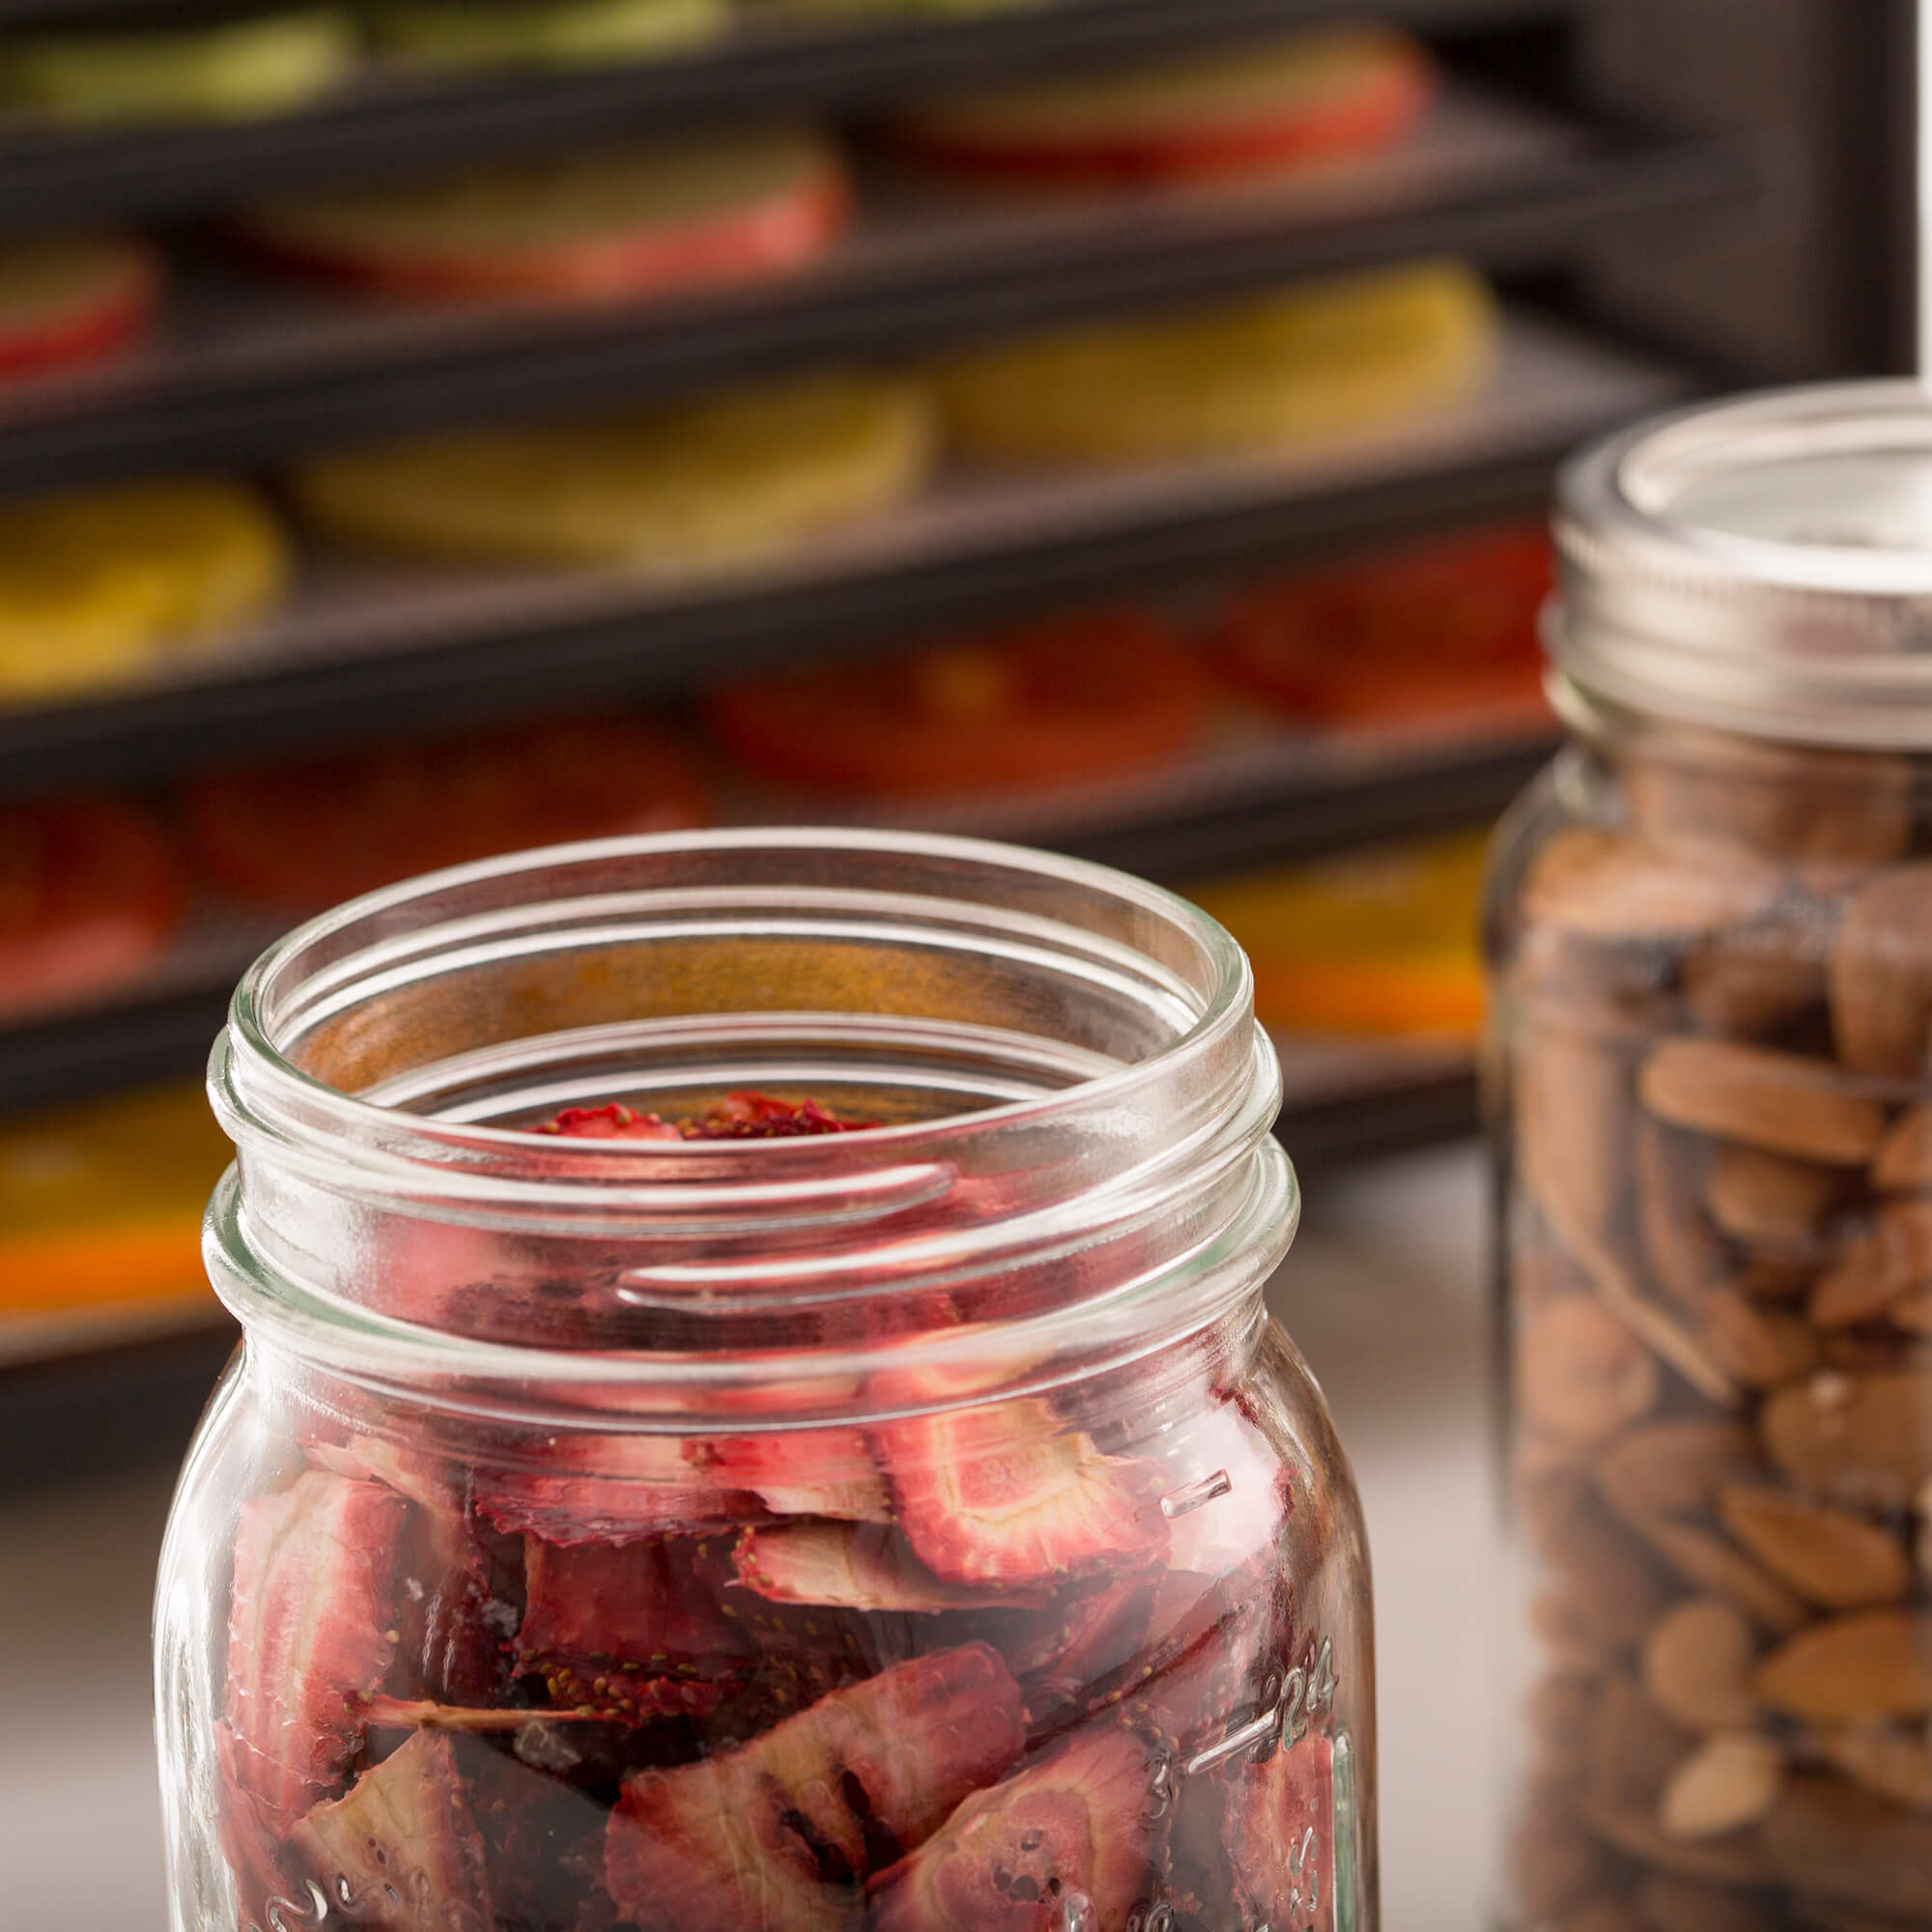 Closeup of glass jars filled with strawberries & nuts, placed in front of an Excalibur RES10 dehydrator.